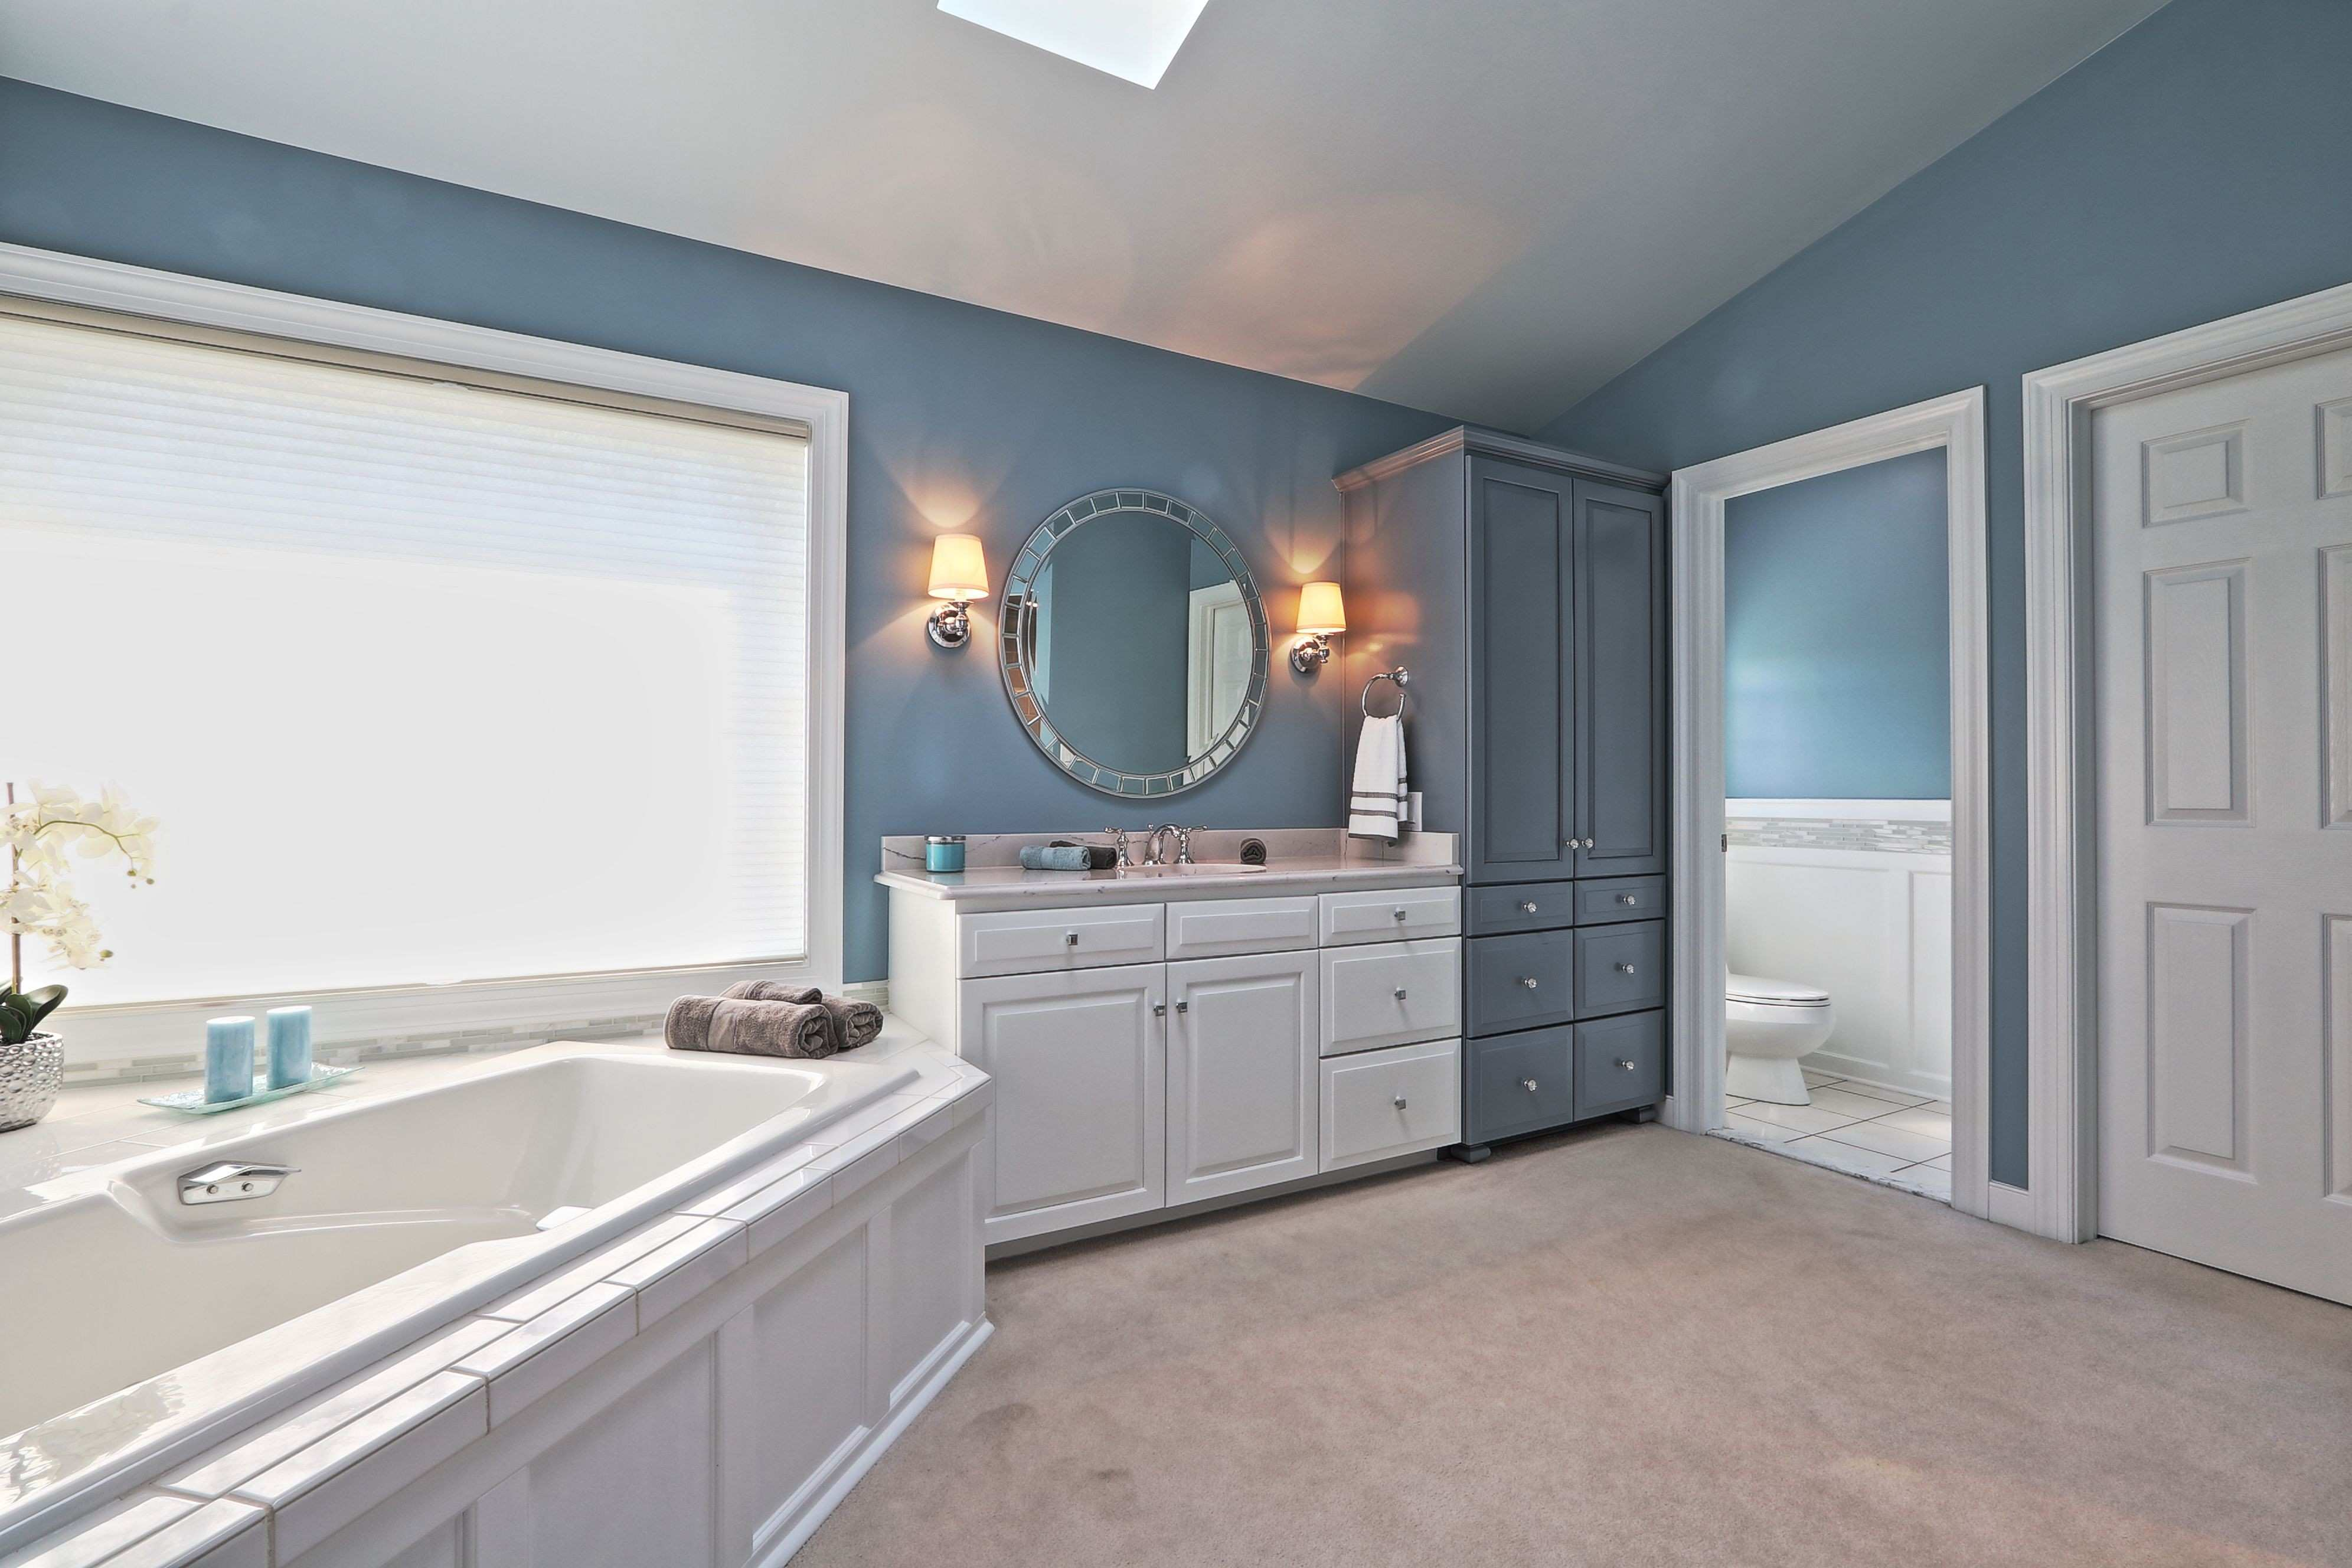 Bathroom Wall Mirrors Awesome White And Gray Cabinets Crystal S Round Multi Faceted